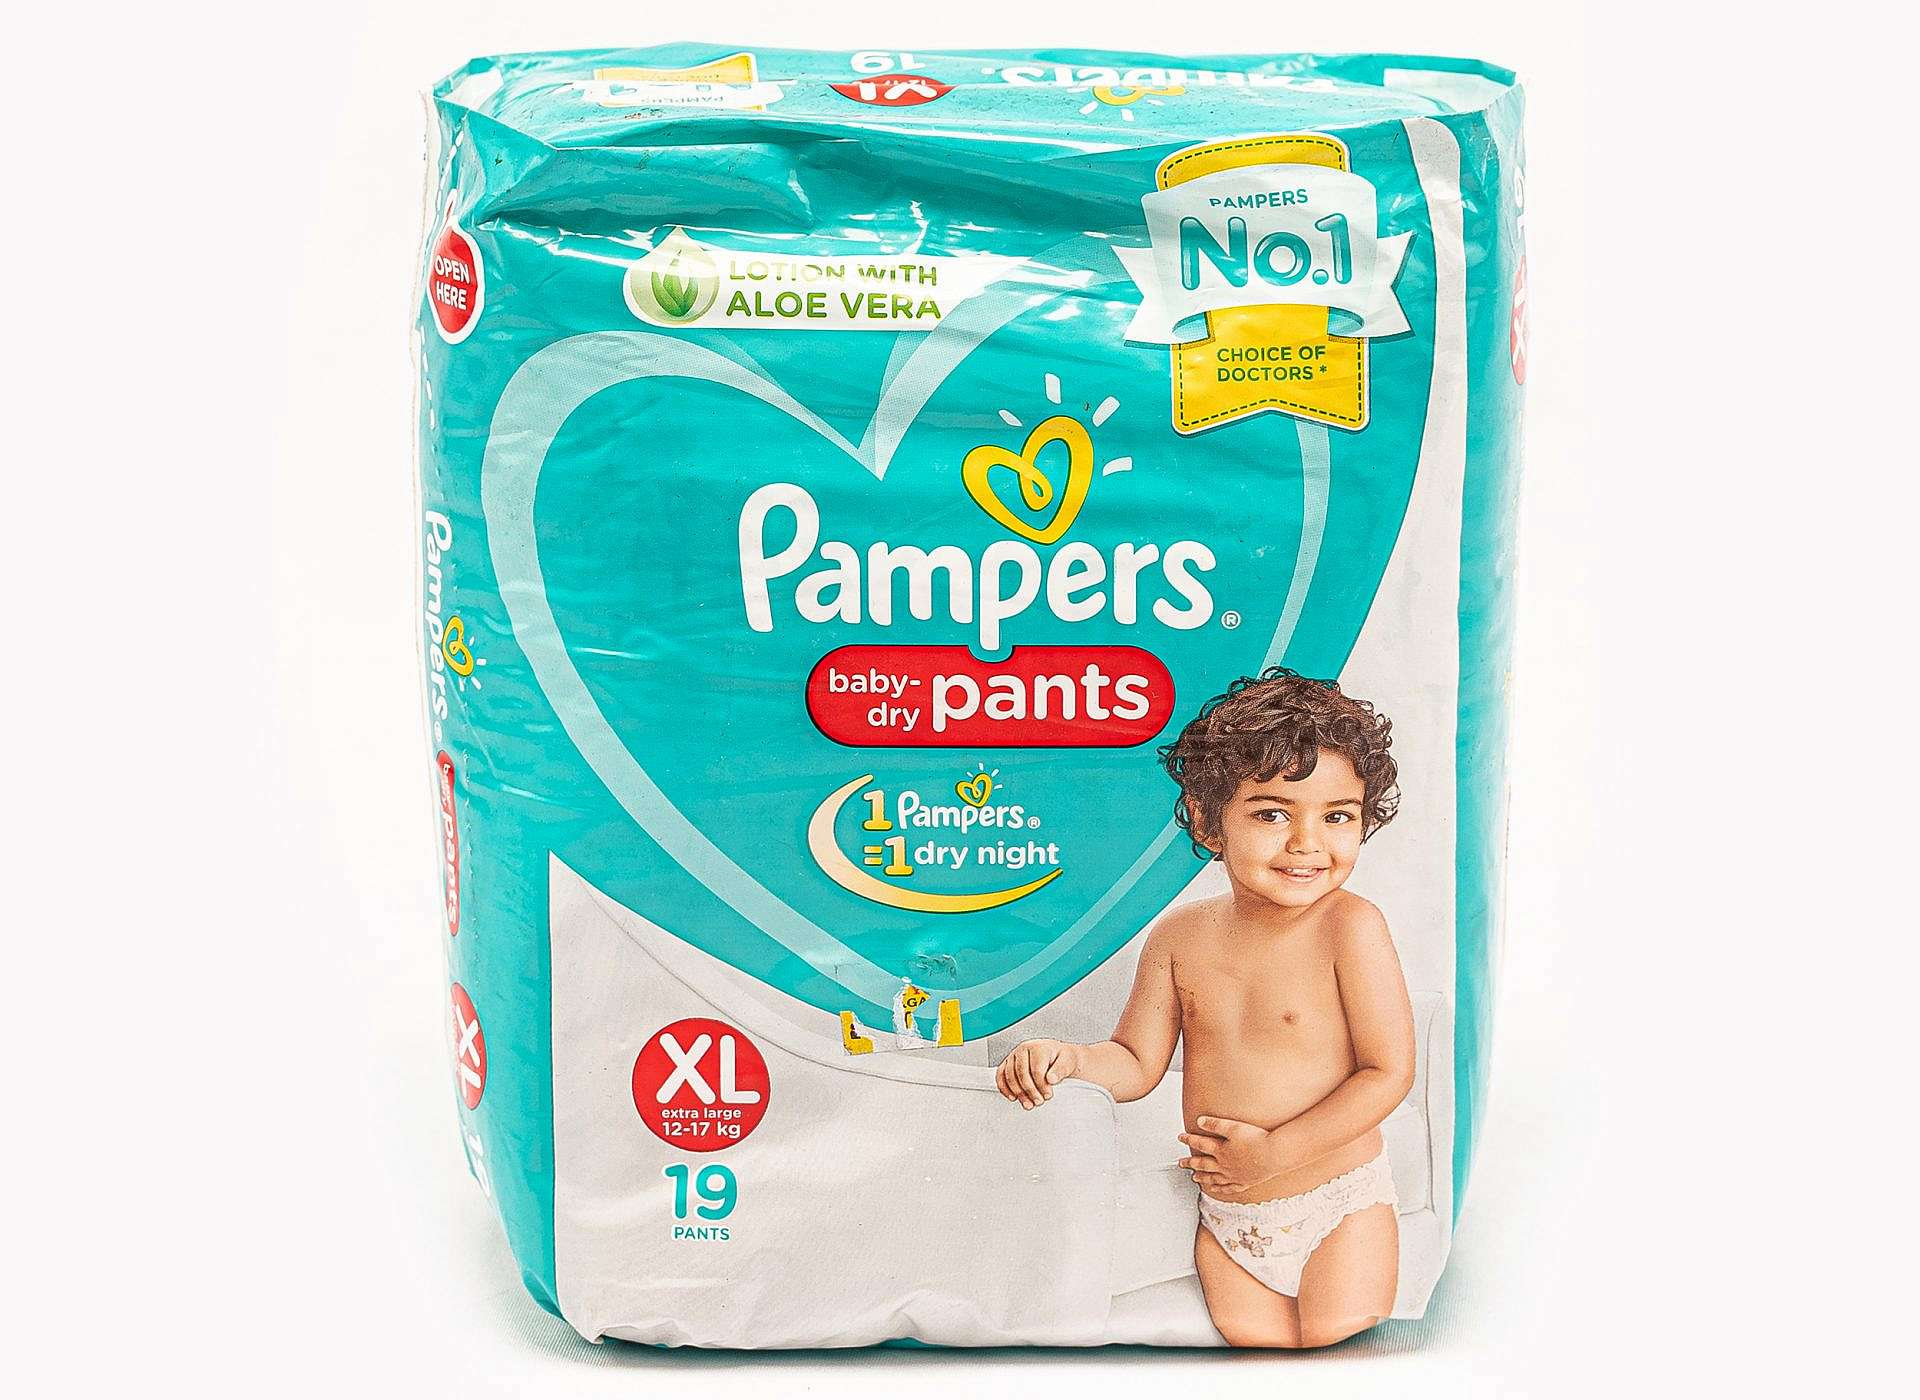 Pampers Babypants XL 19 1 1